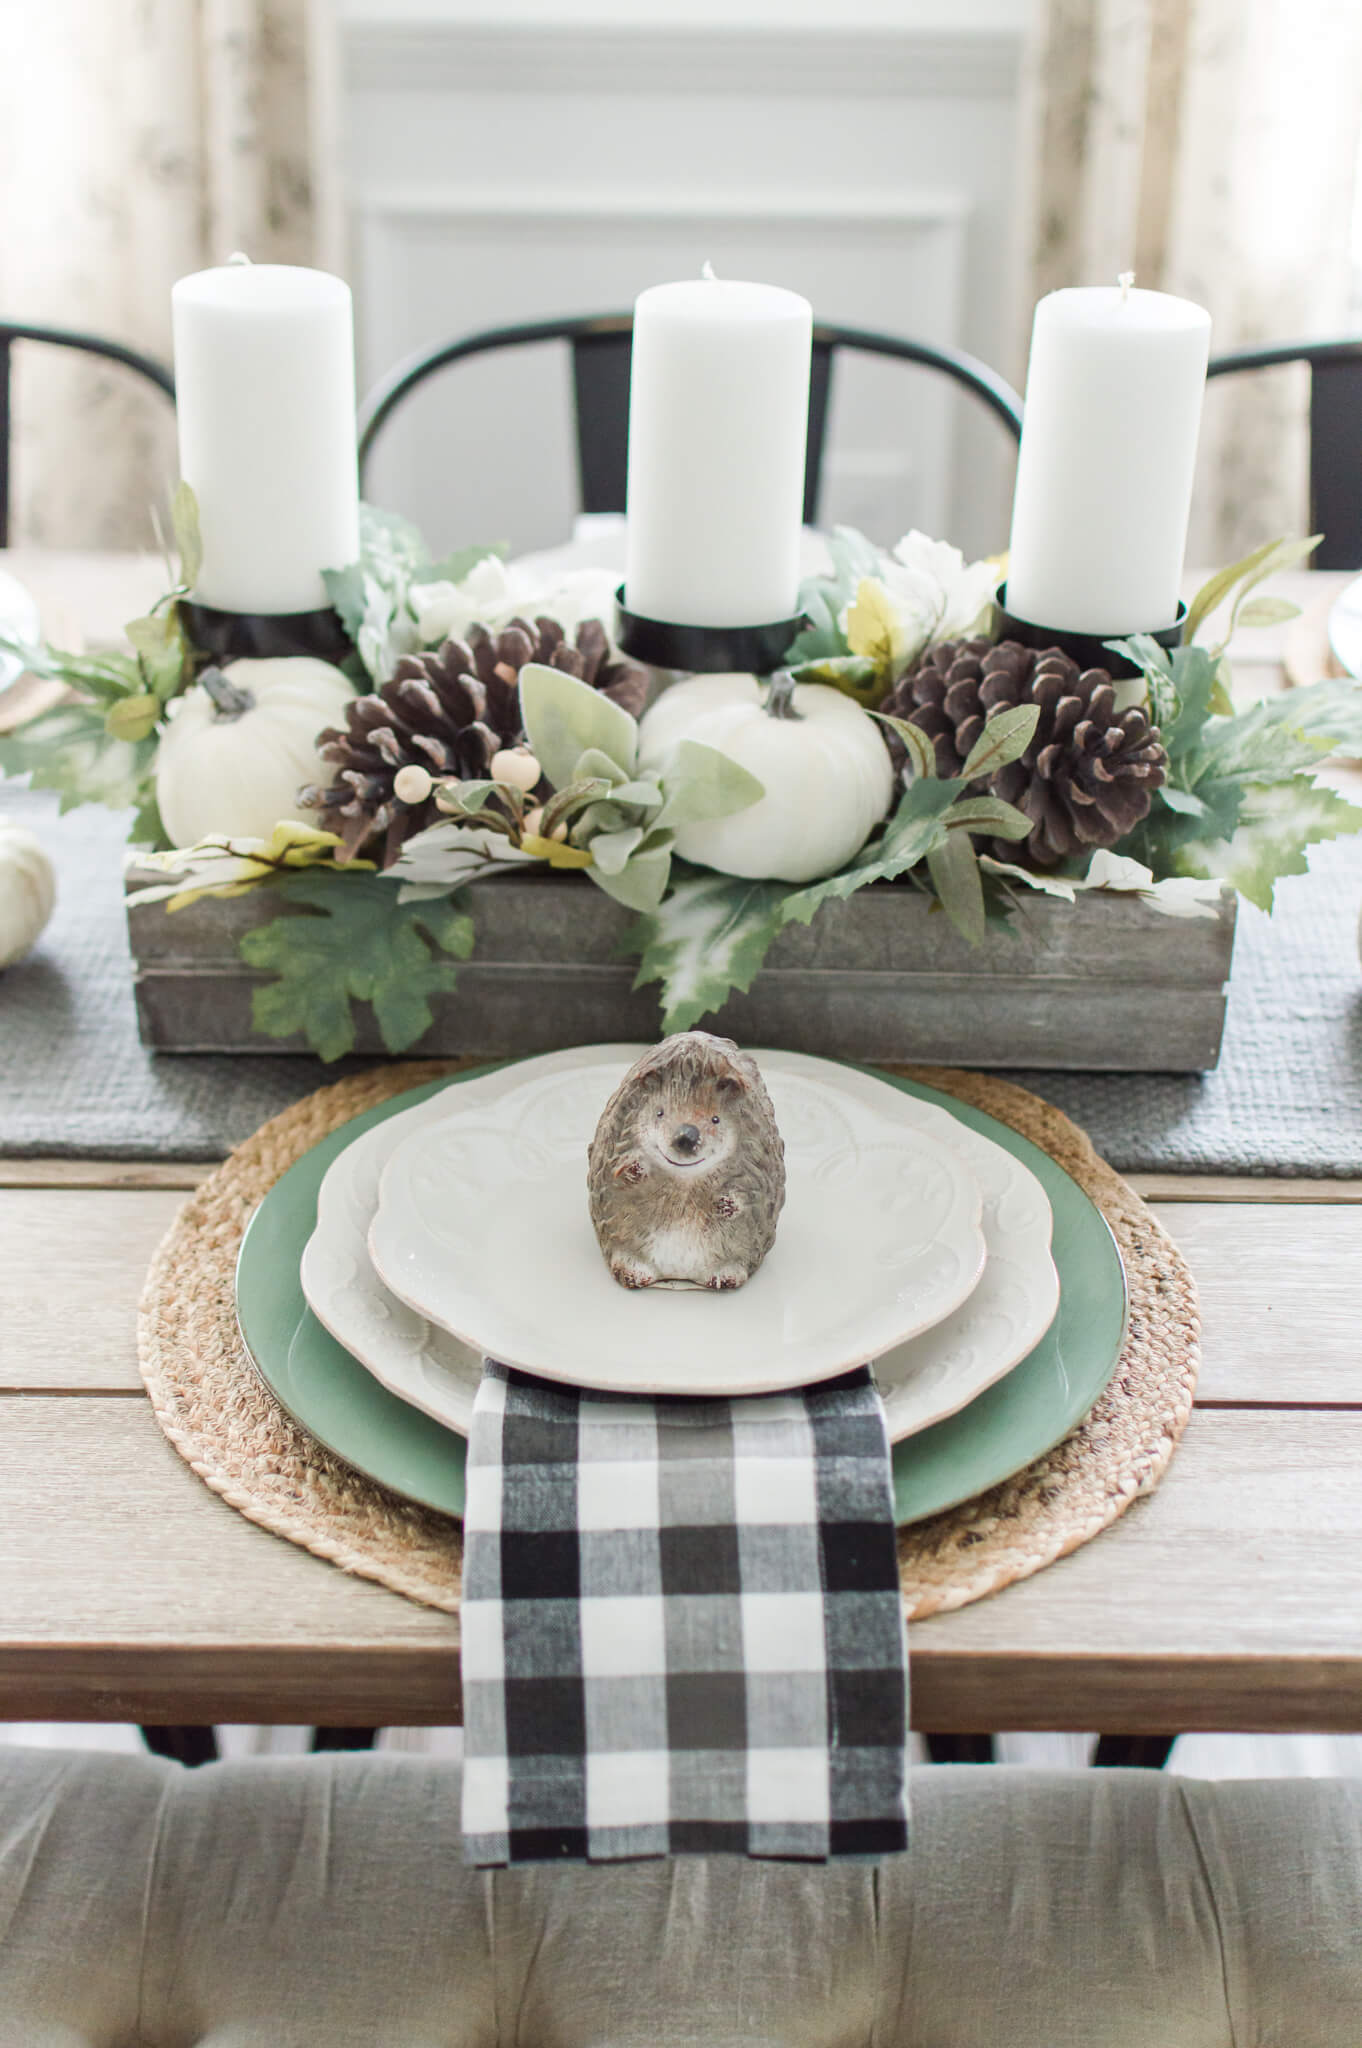 Simple and Neutral Fall Farmhouse Dining Room / A Hosting Home / The Perfect Fall Transition Decor / Neutral Fall Home Decor